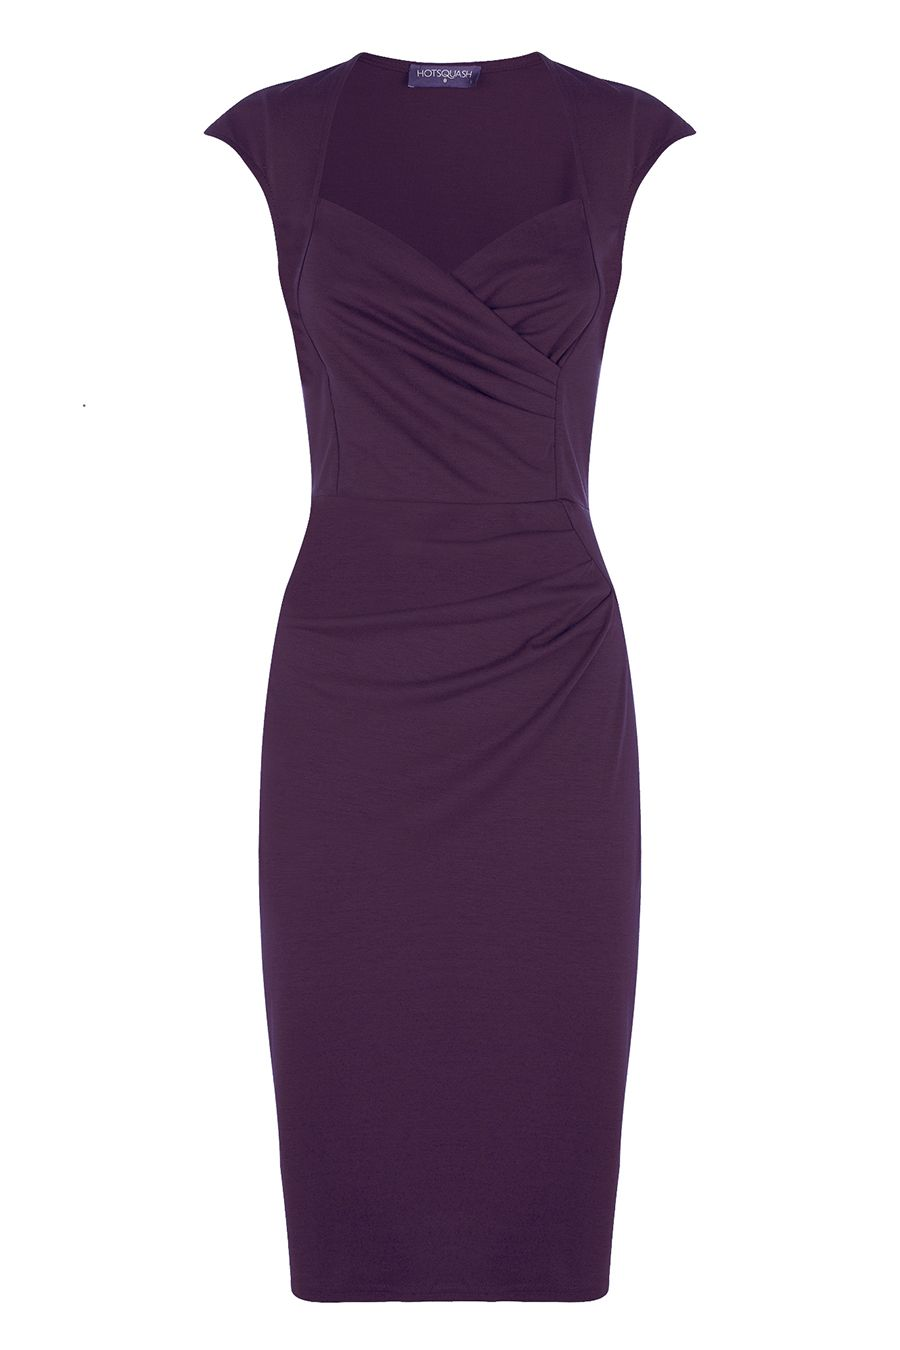 HotSquash Short sleeved dress in clever fabric, Damson